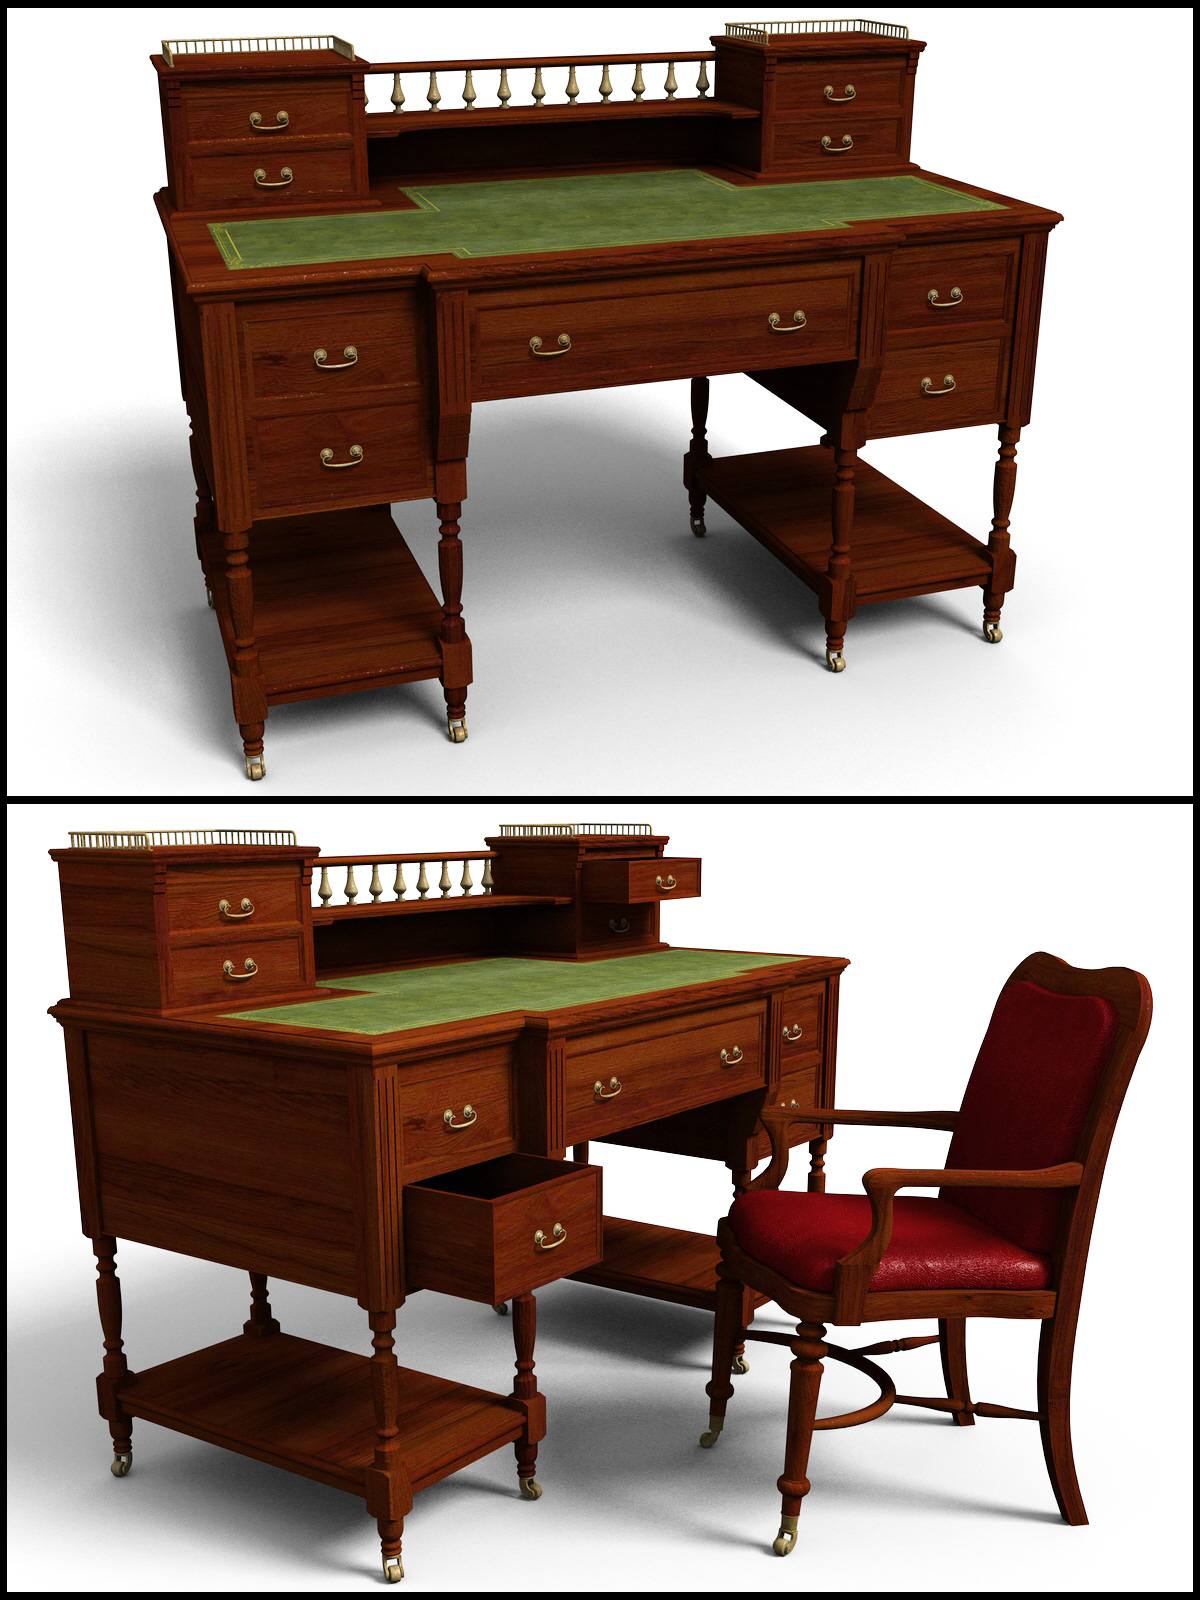 Victorian Writing Desk - Extended License